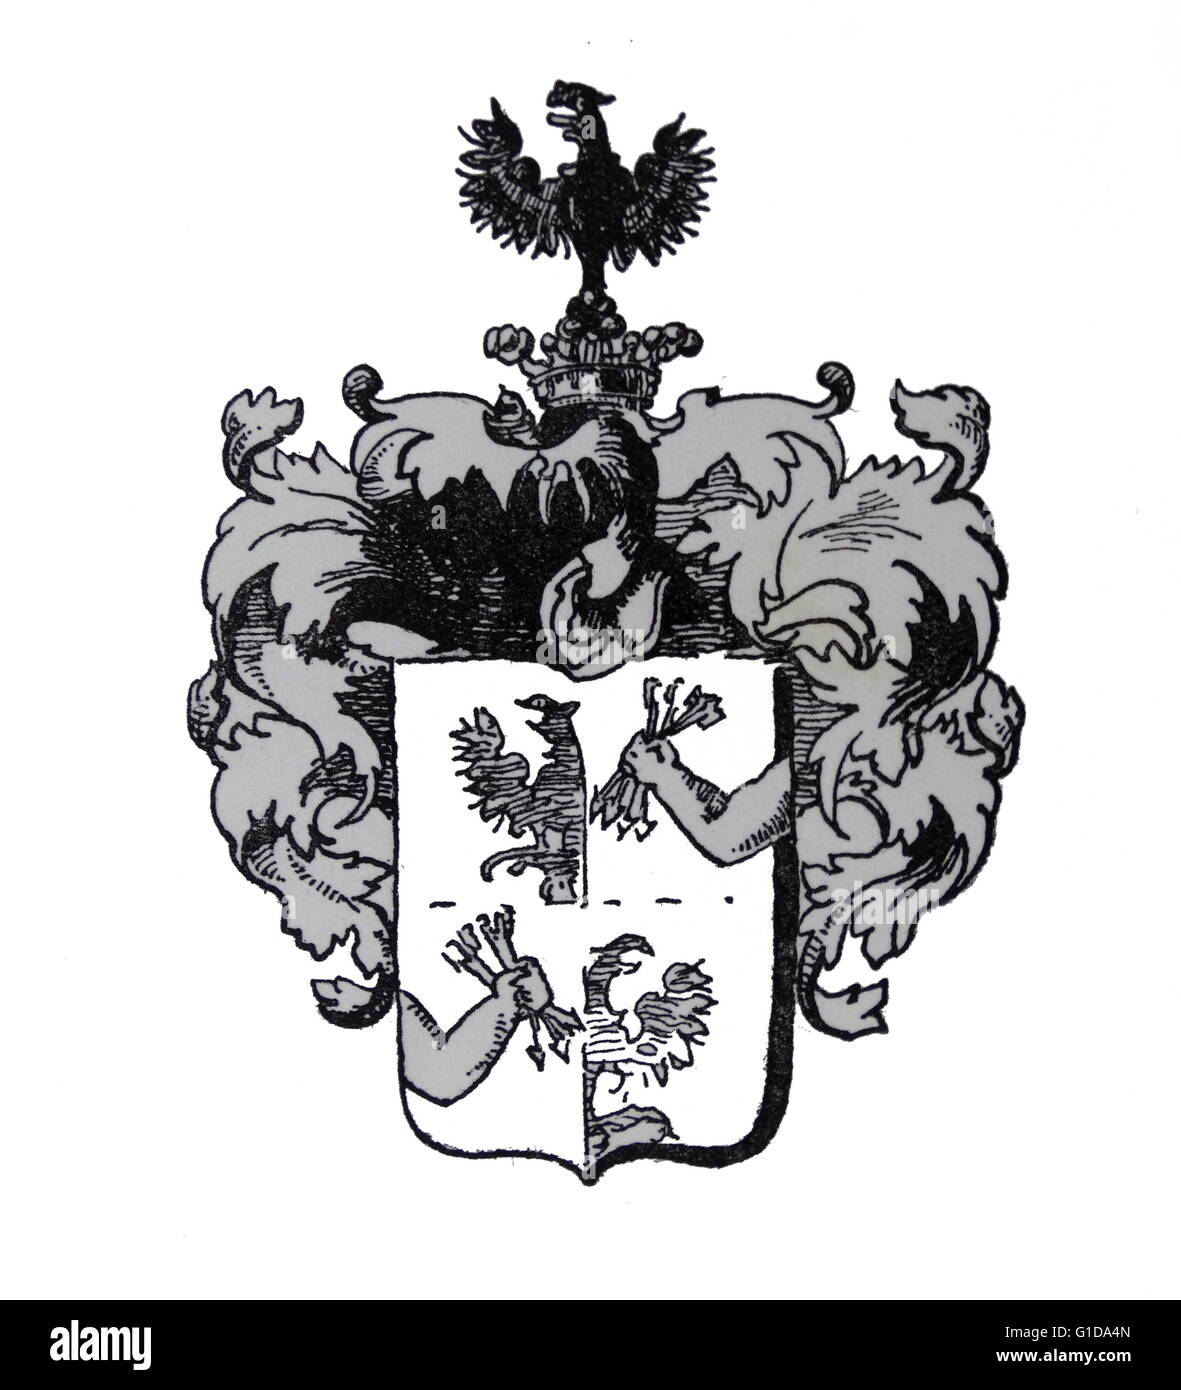 Family crest of the Rothschild banking family. The Rothschild's were a family financial dynasty in the 18th - Stock Image